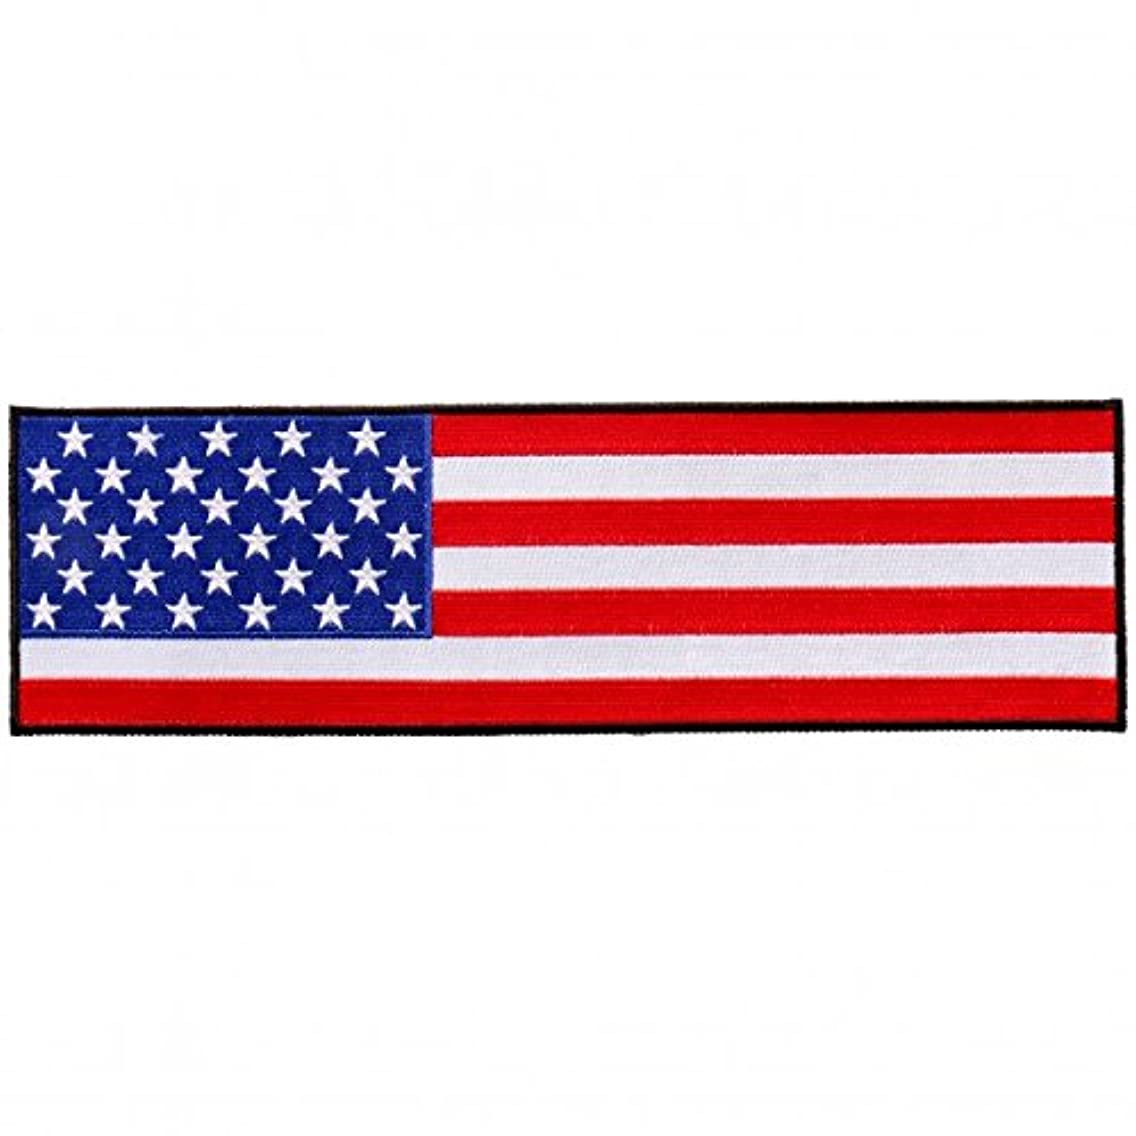 Cropped American Flag Iron On Patches - Sew On Artwork Applique Patch, 10